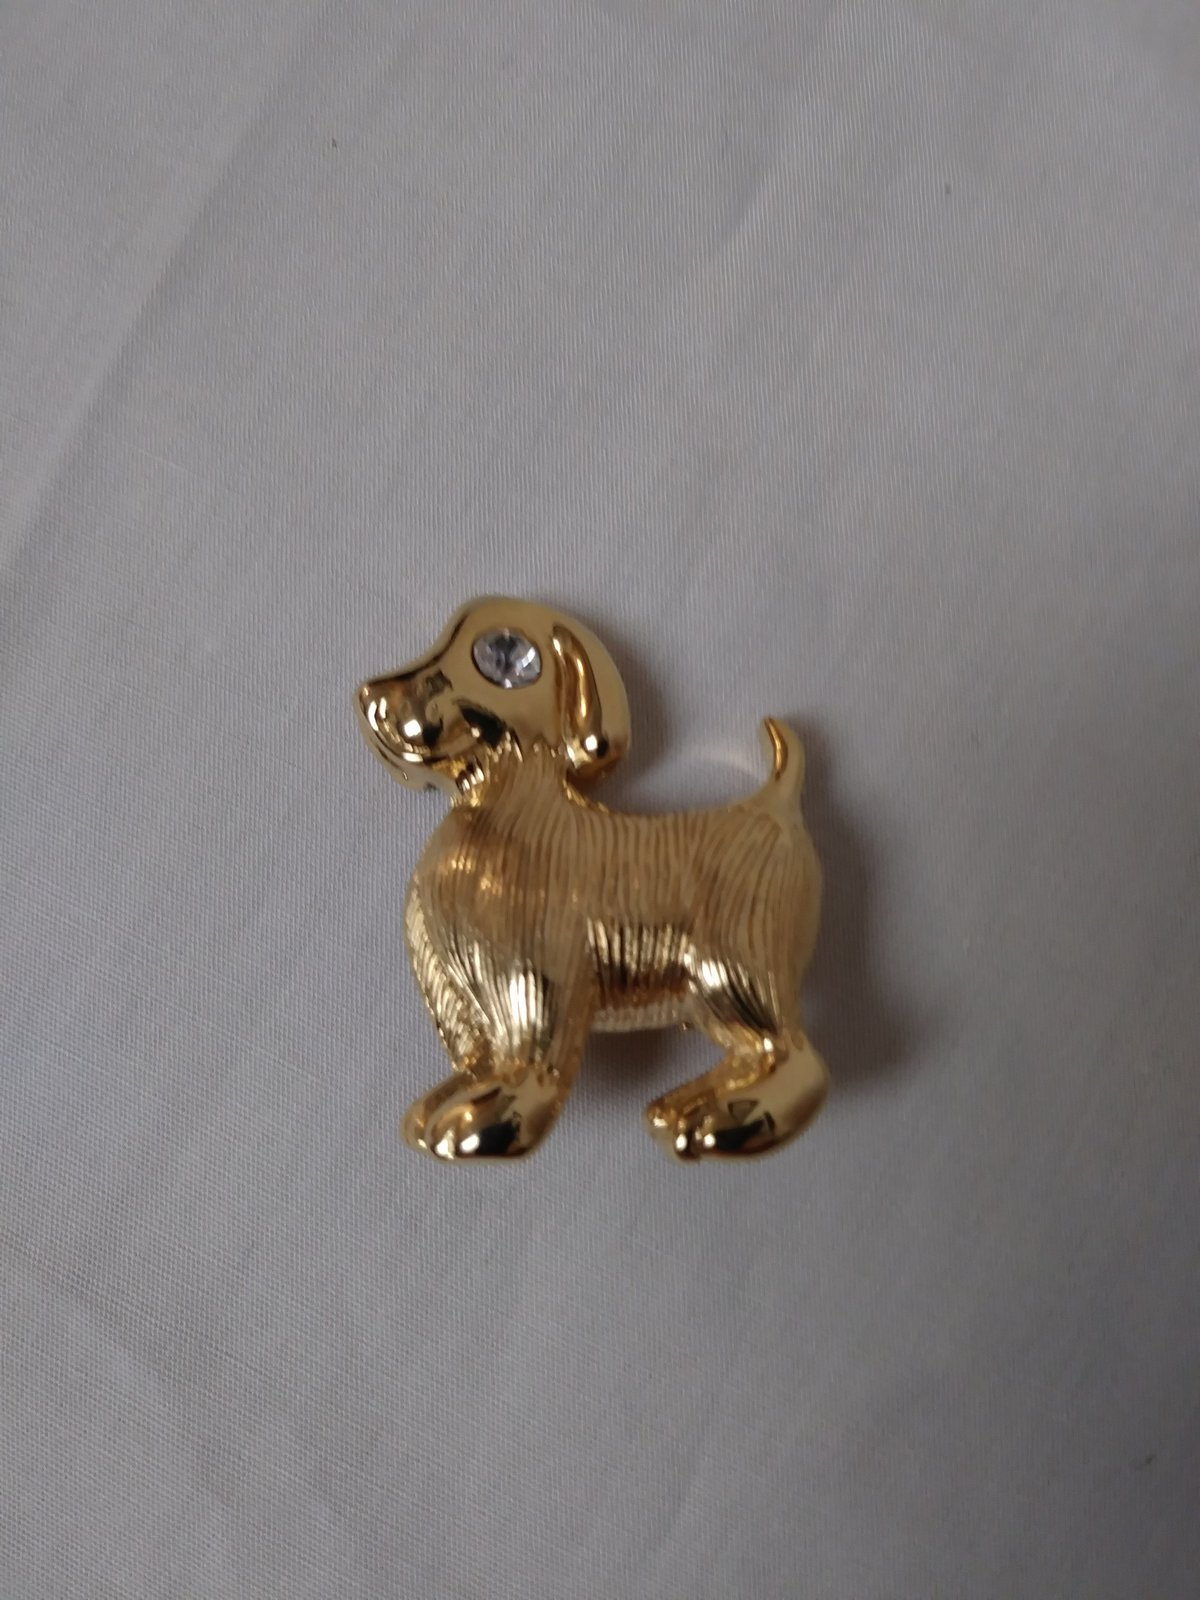 Gold Tone Dog Rhinestone Eye Pin Jewelry